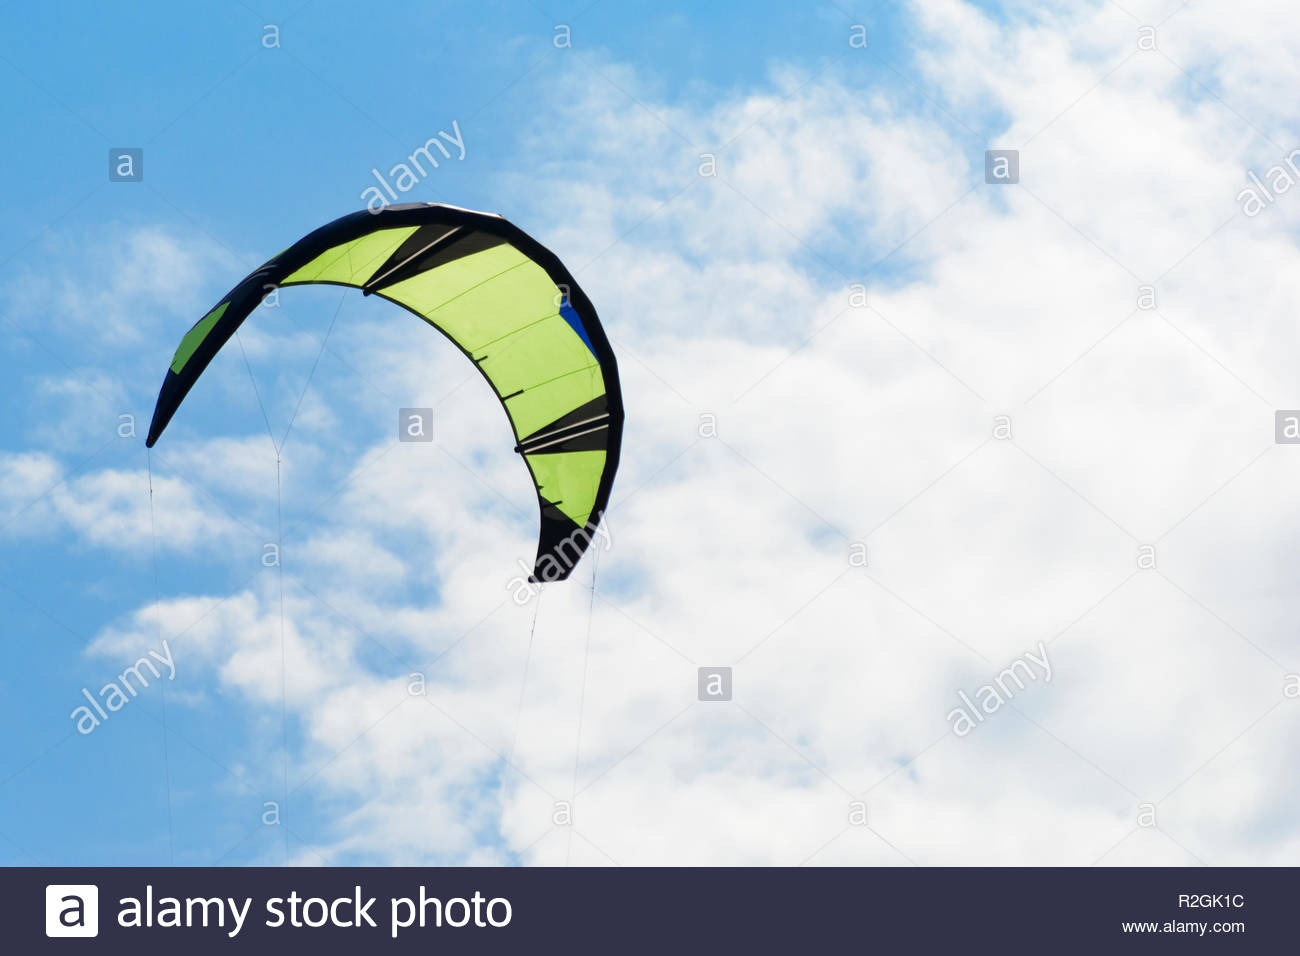 Kiteboarding kite close up blue sky with clouds in background 1300x956